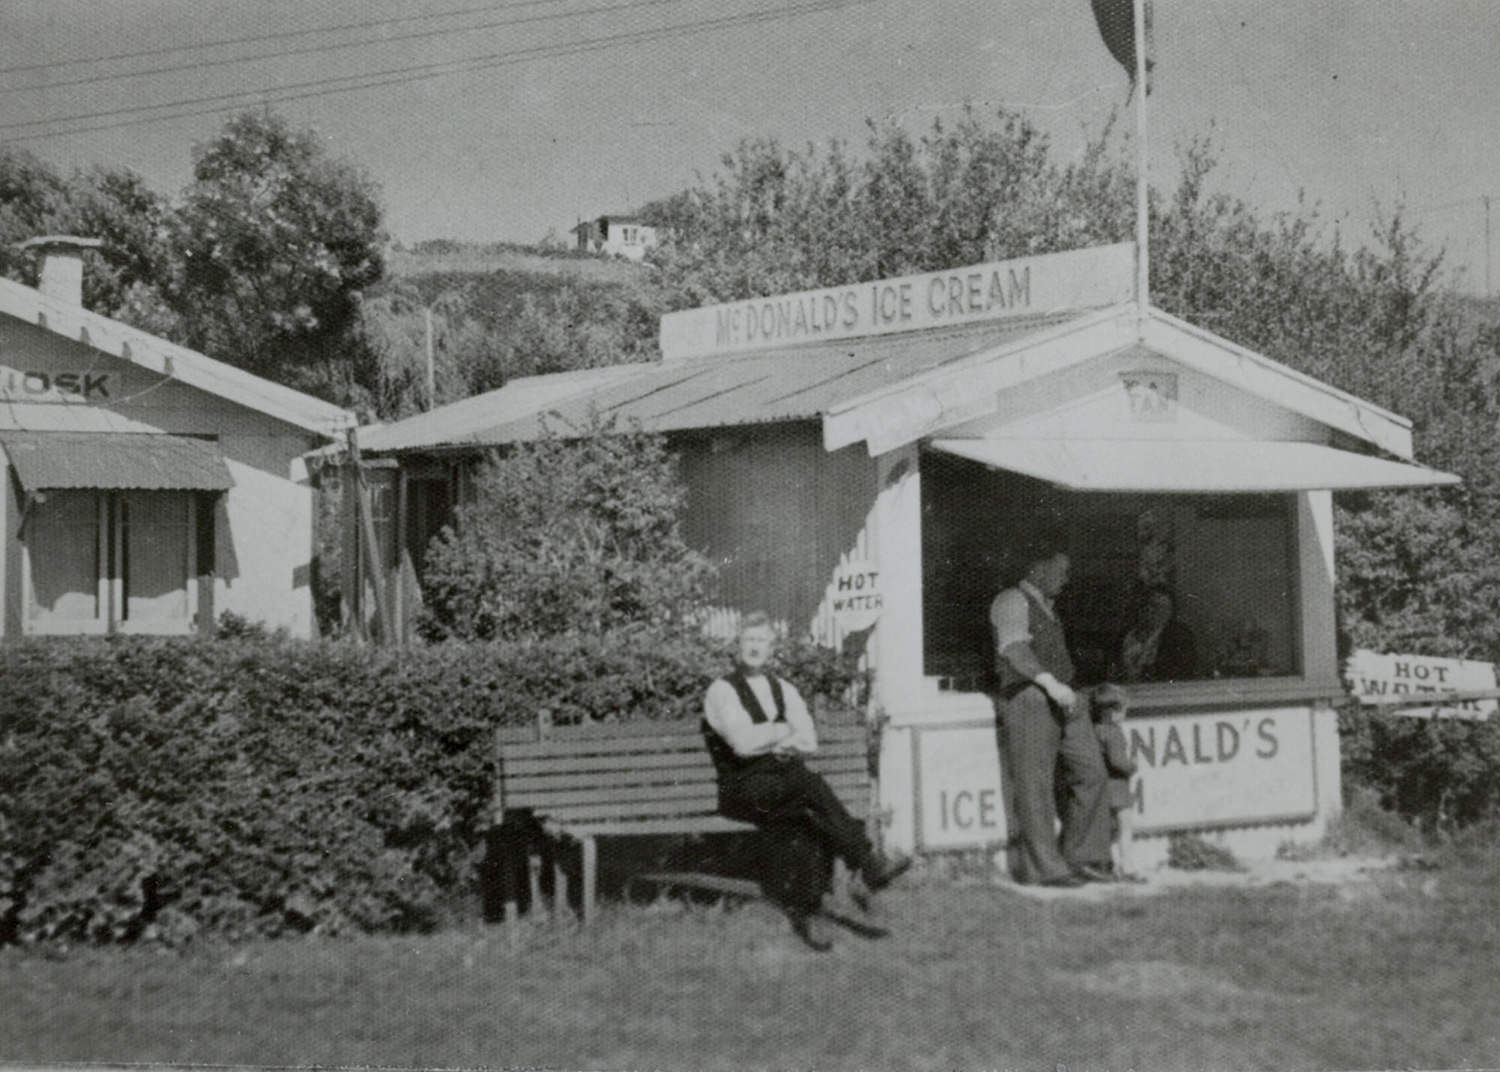 Kiosk at Cockle Bay, ca 1939. Photograph reproduced by courtesy of Howick Historical Society.